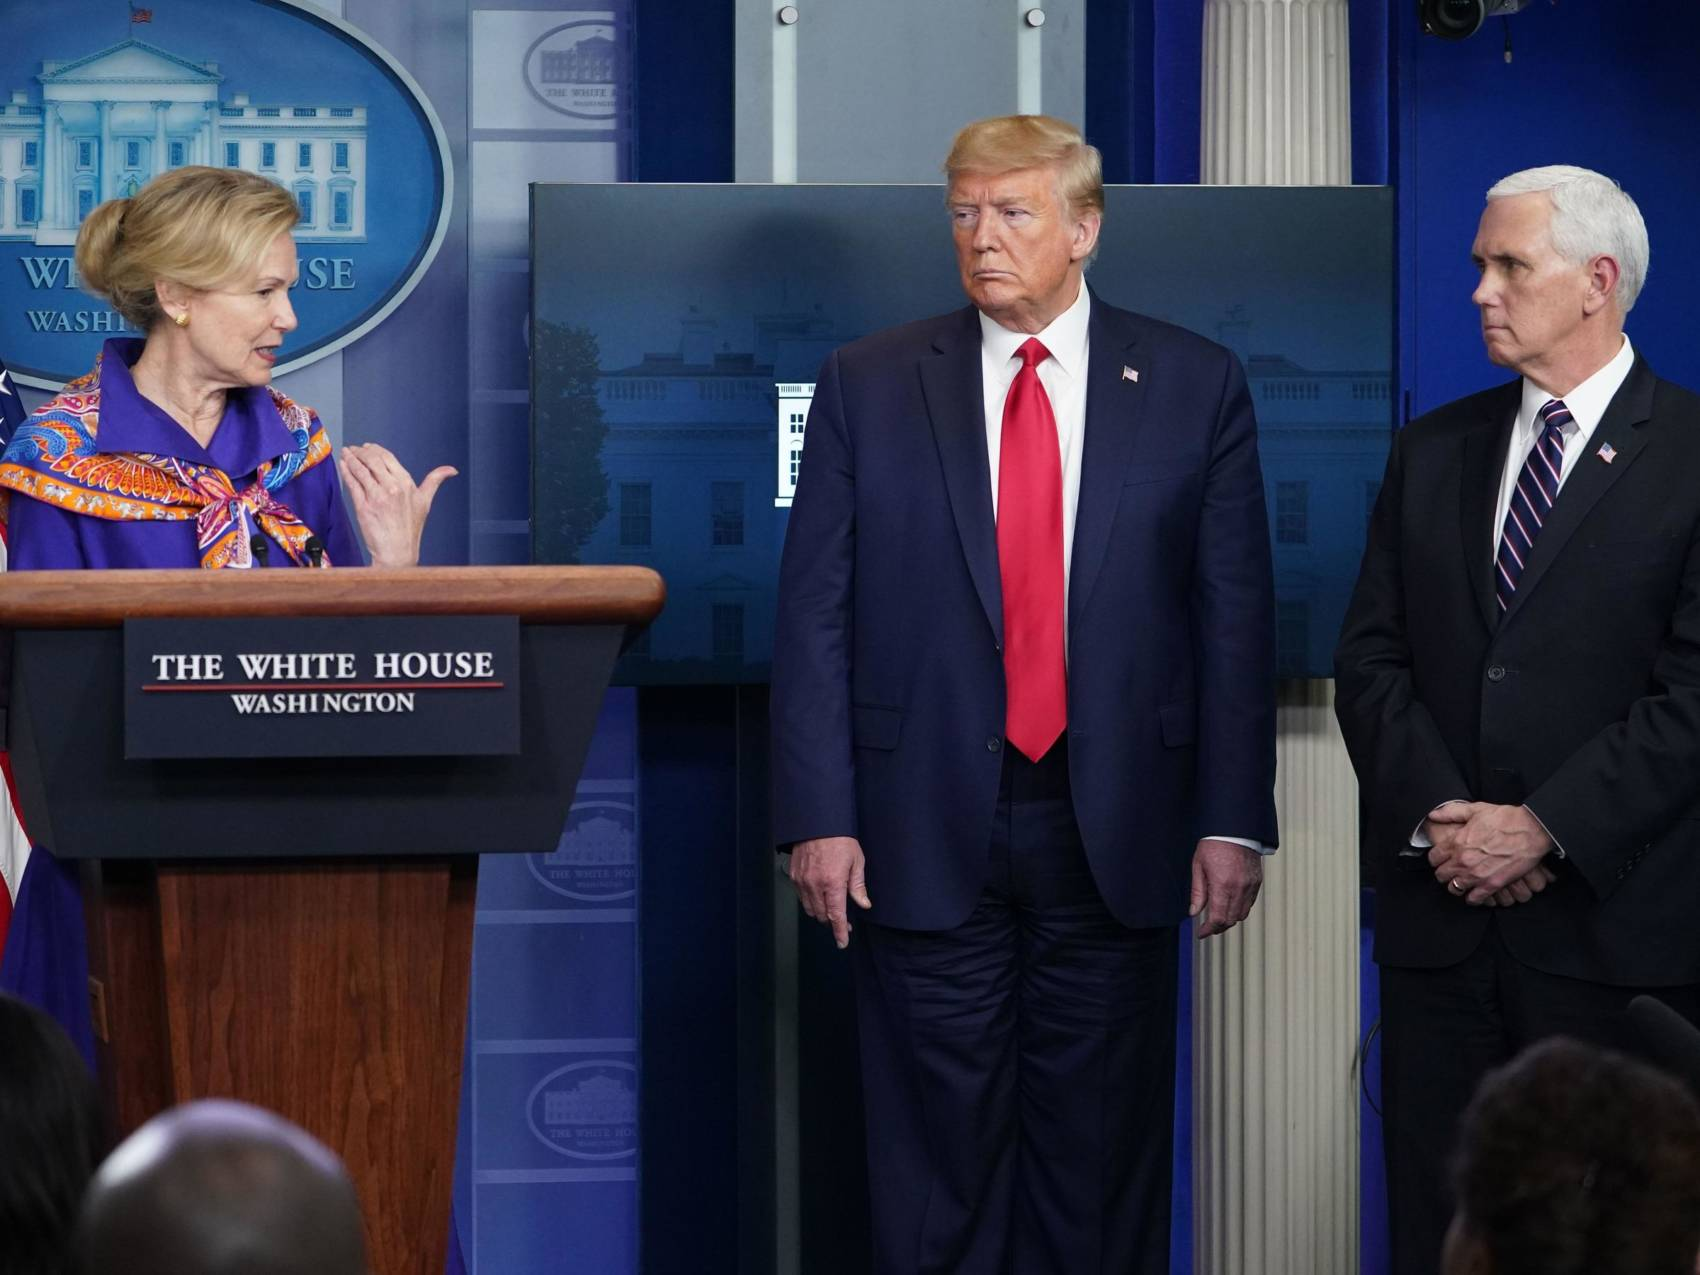 While Disinfectant Comments Cause Trump To Retreat from View, They Cast Unwanted Spotlight on Dr Birx